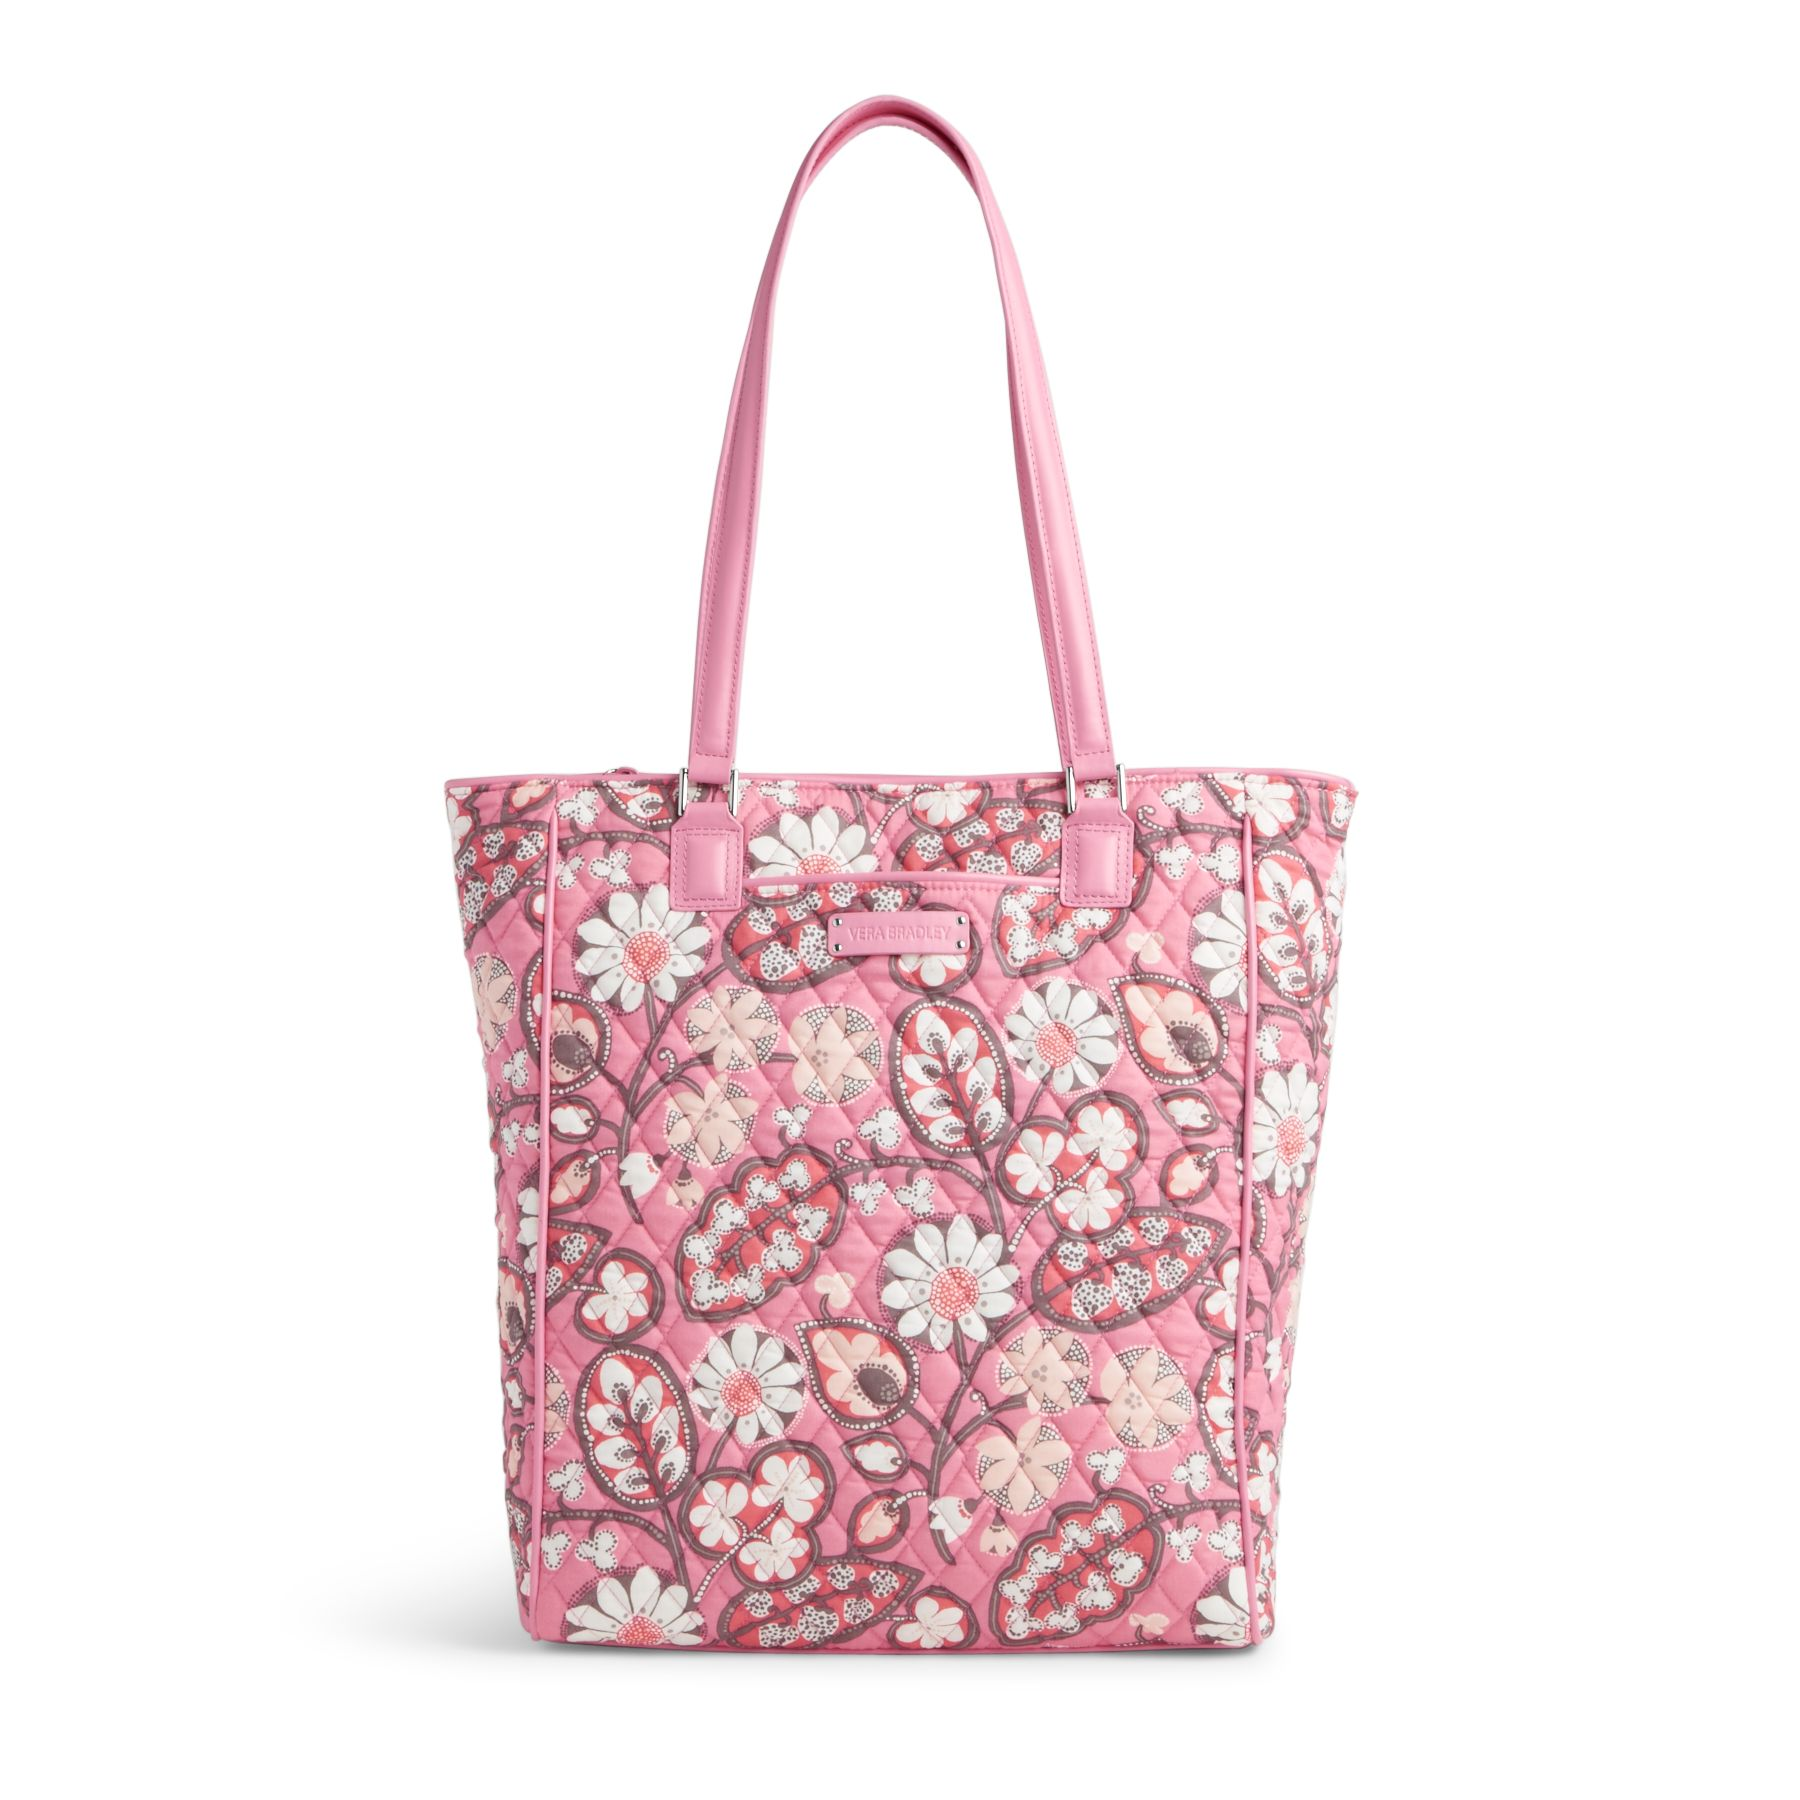 44ba0ea5f6 ... UPC 886003347454 product image for Vera Bradley Crosstown Tote in Blush  Pink with Pink